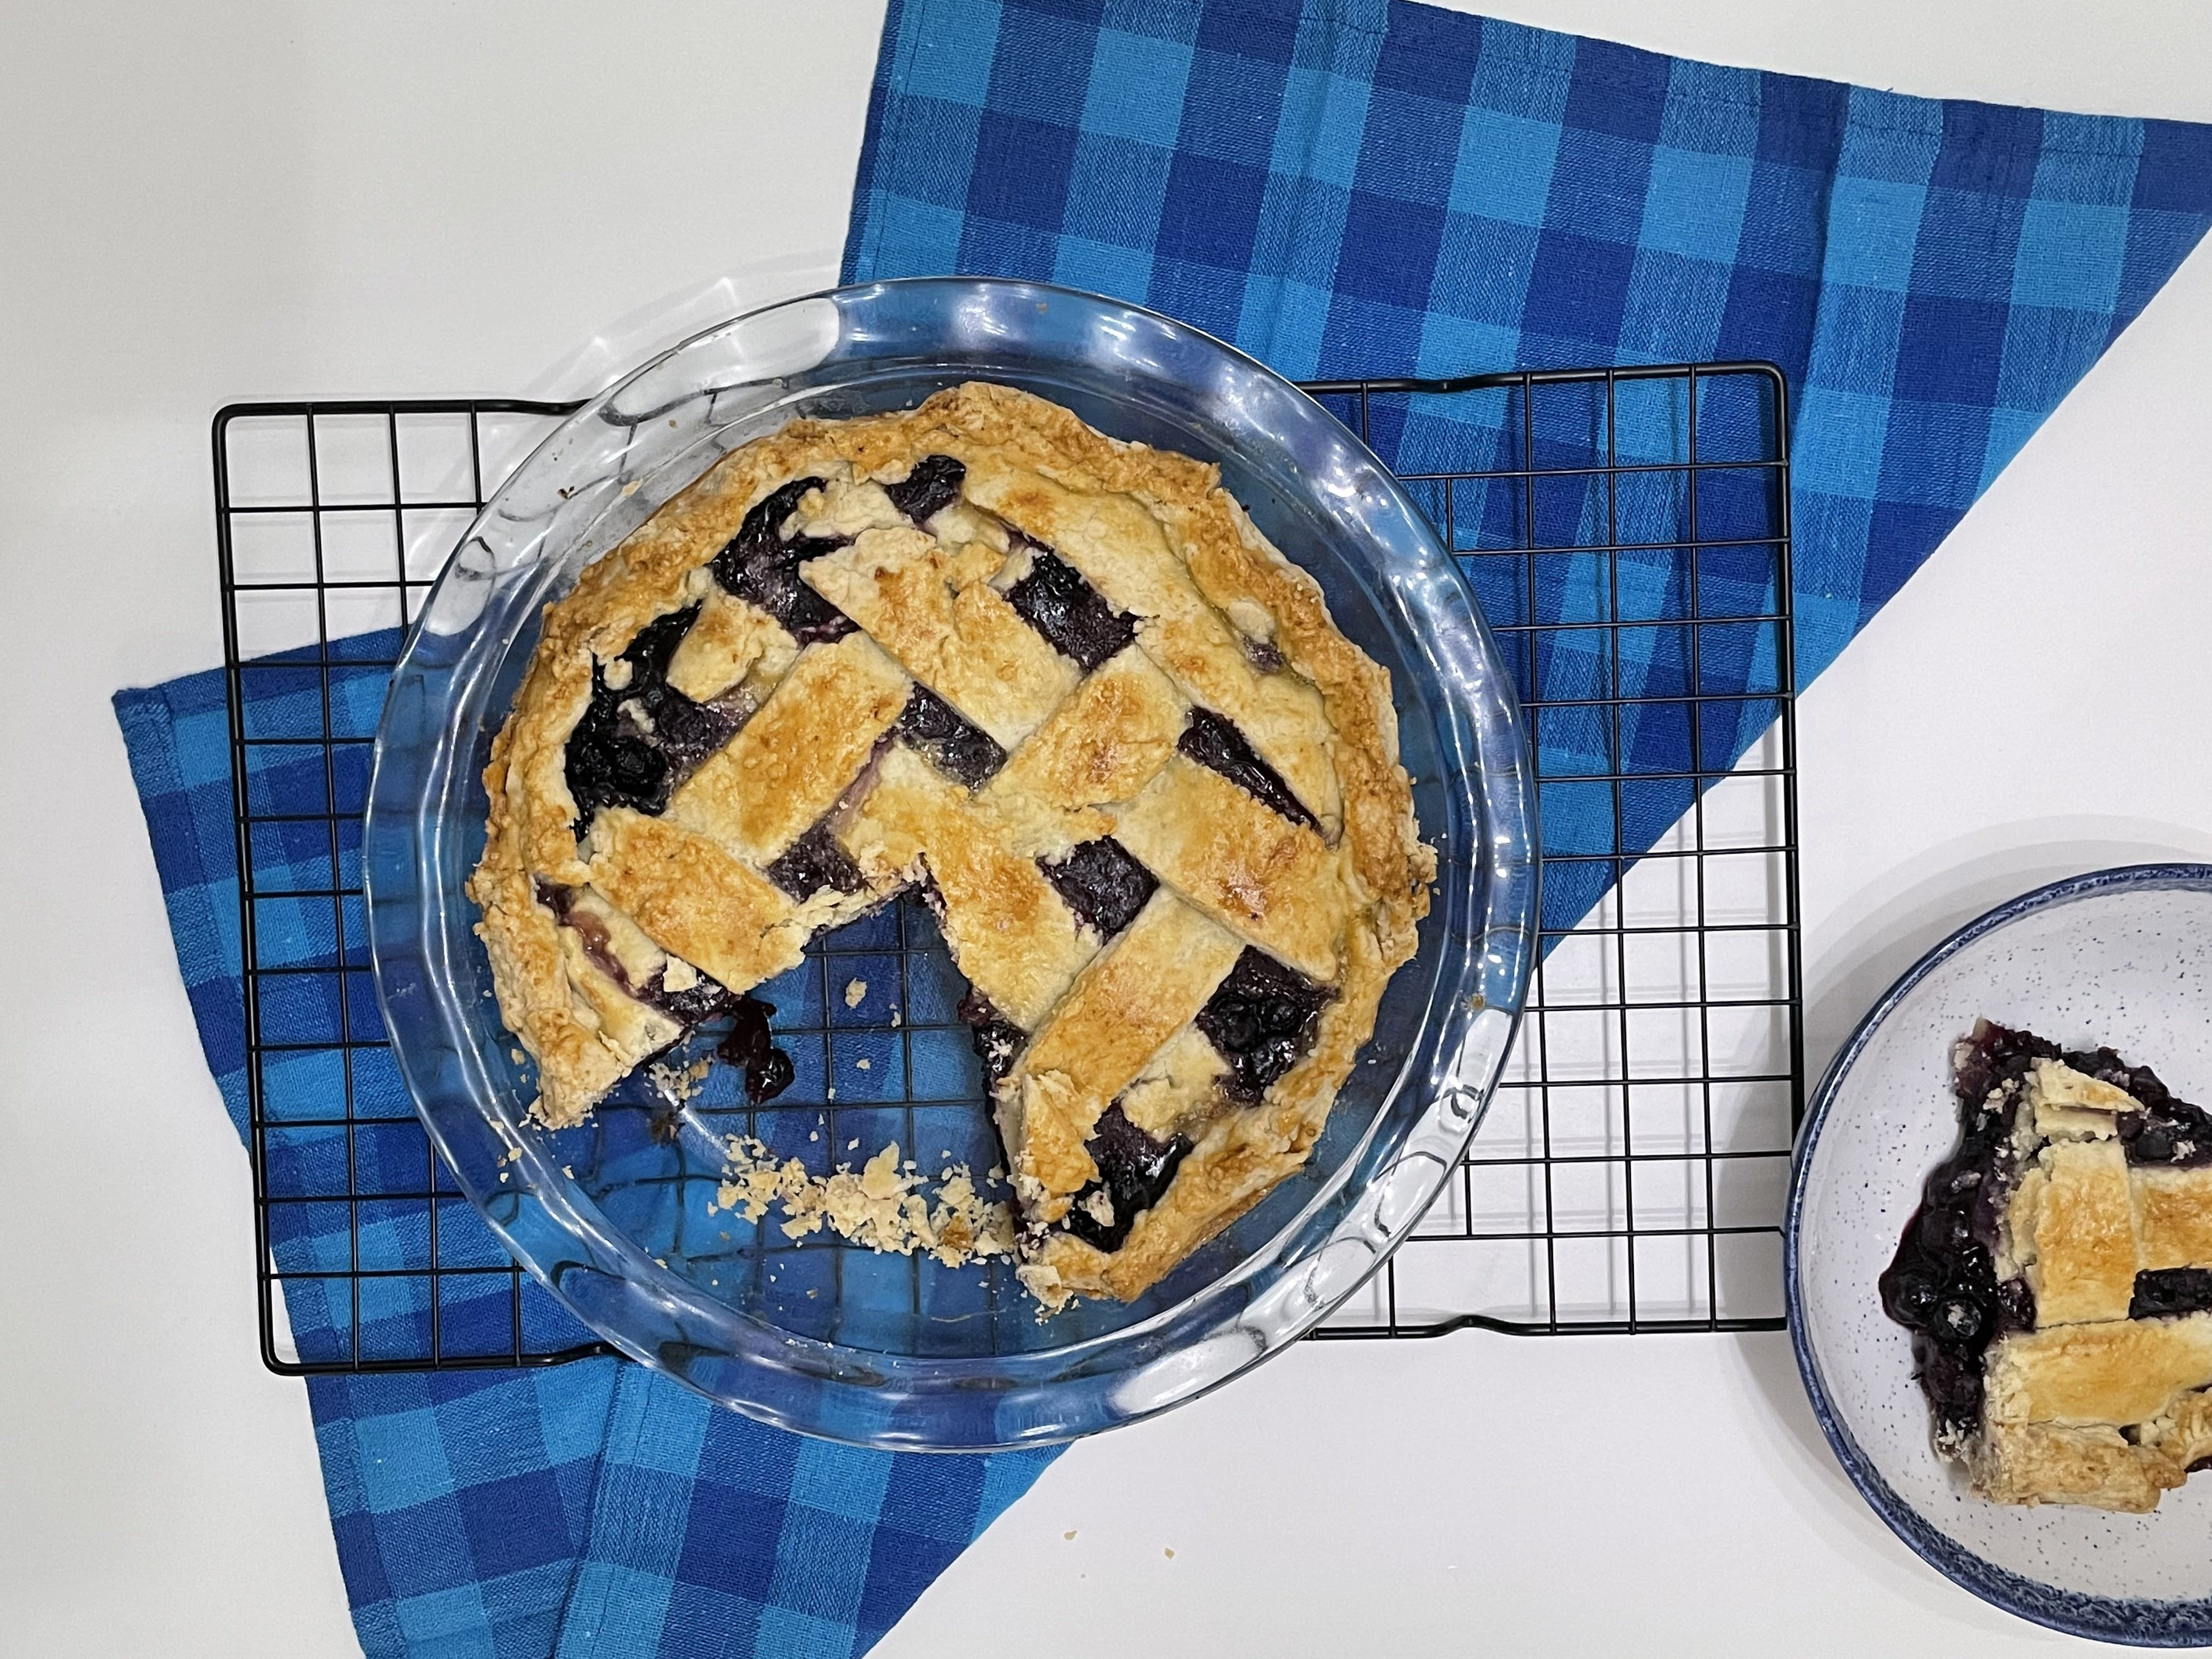 Blueberry pie with flaky crust